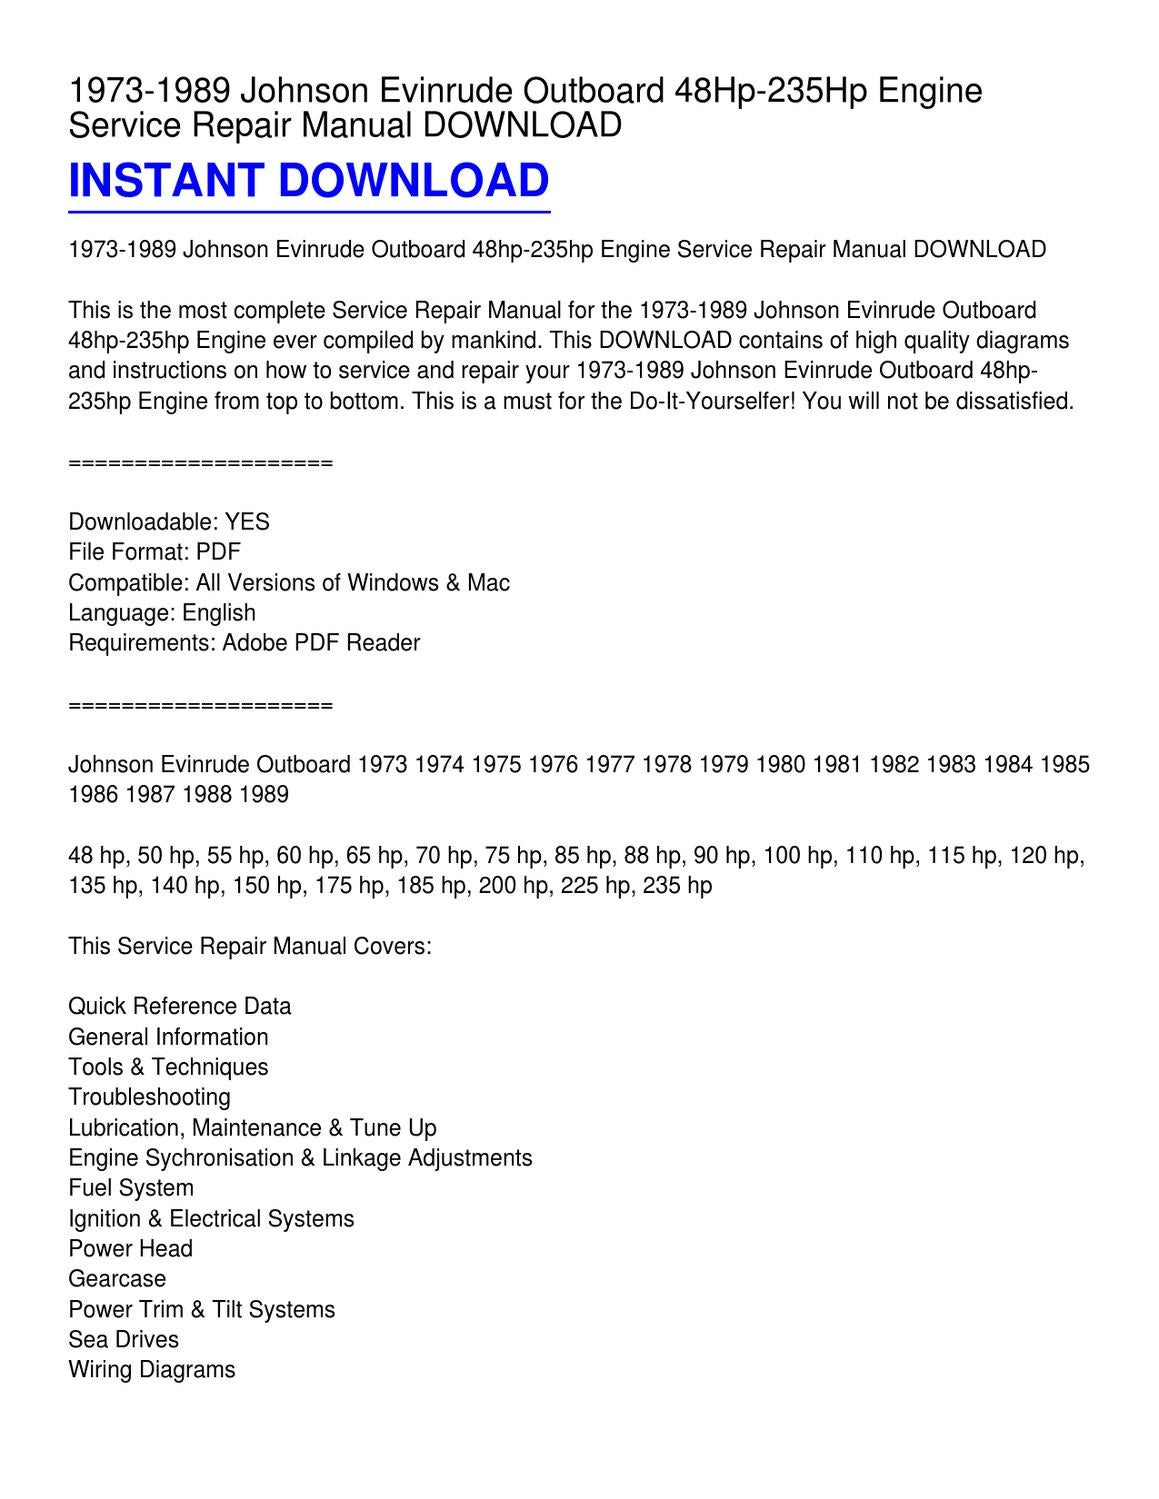 hight resolution of 1973 1989 johnson evinrude outboard 48hp 235hp engine service repair manual download by vernon